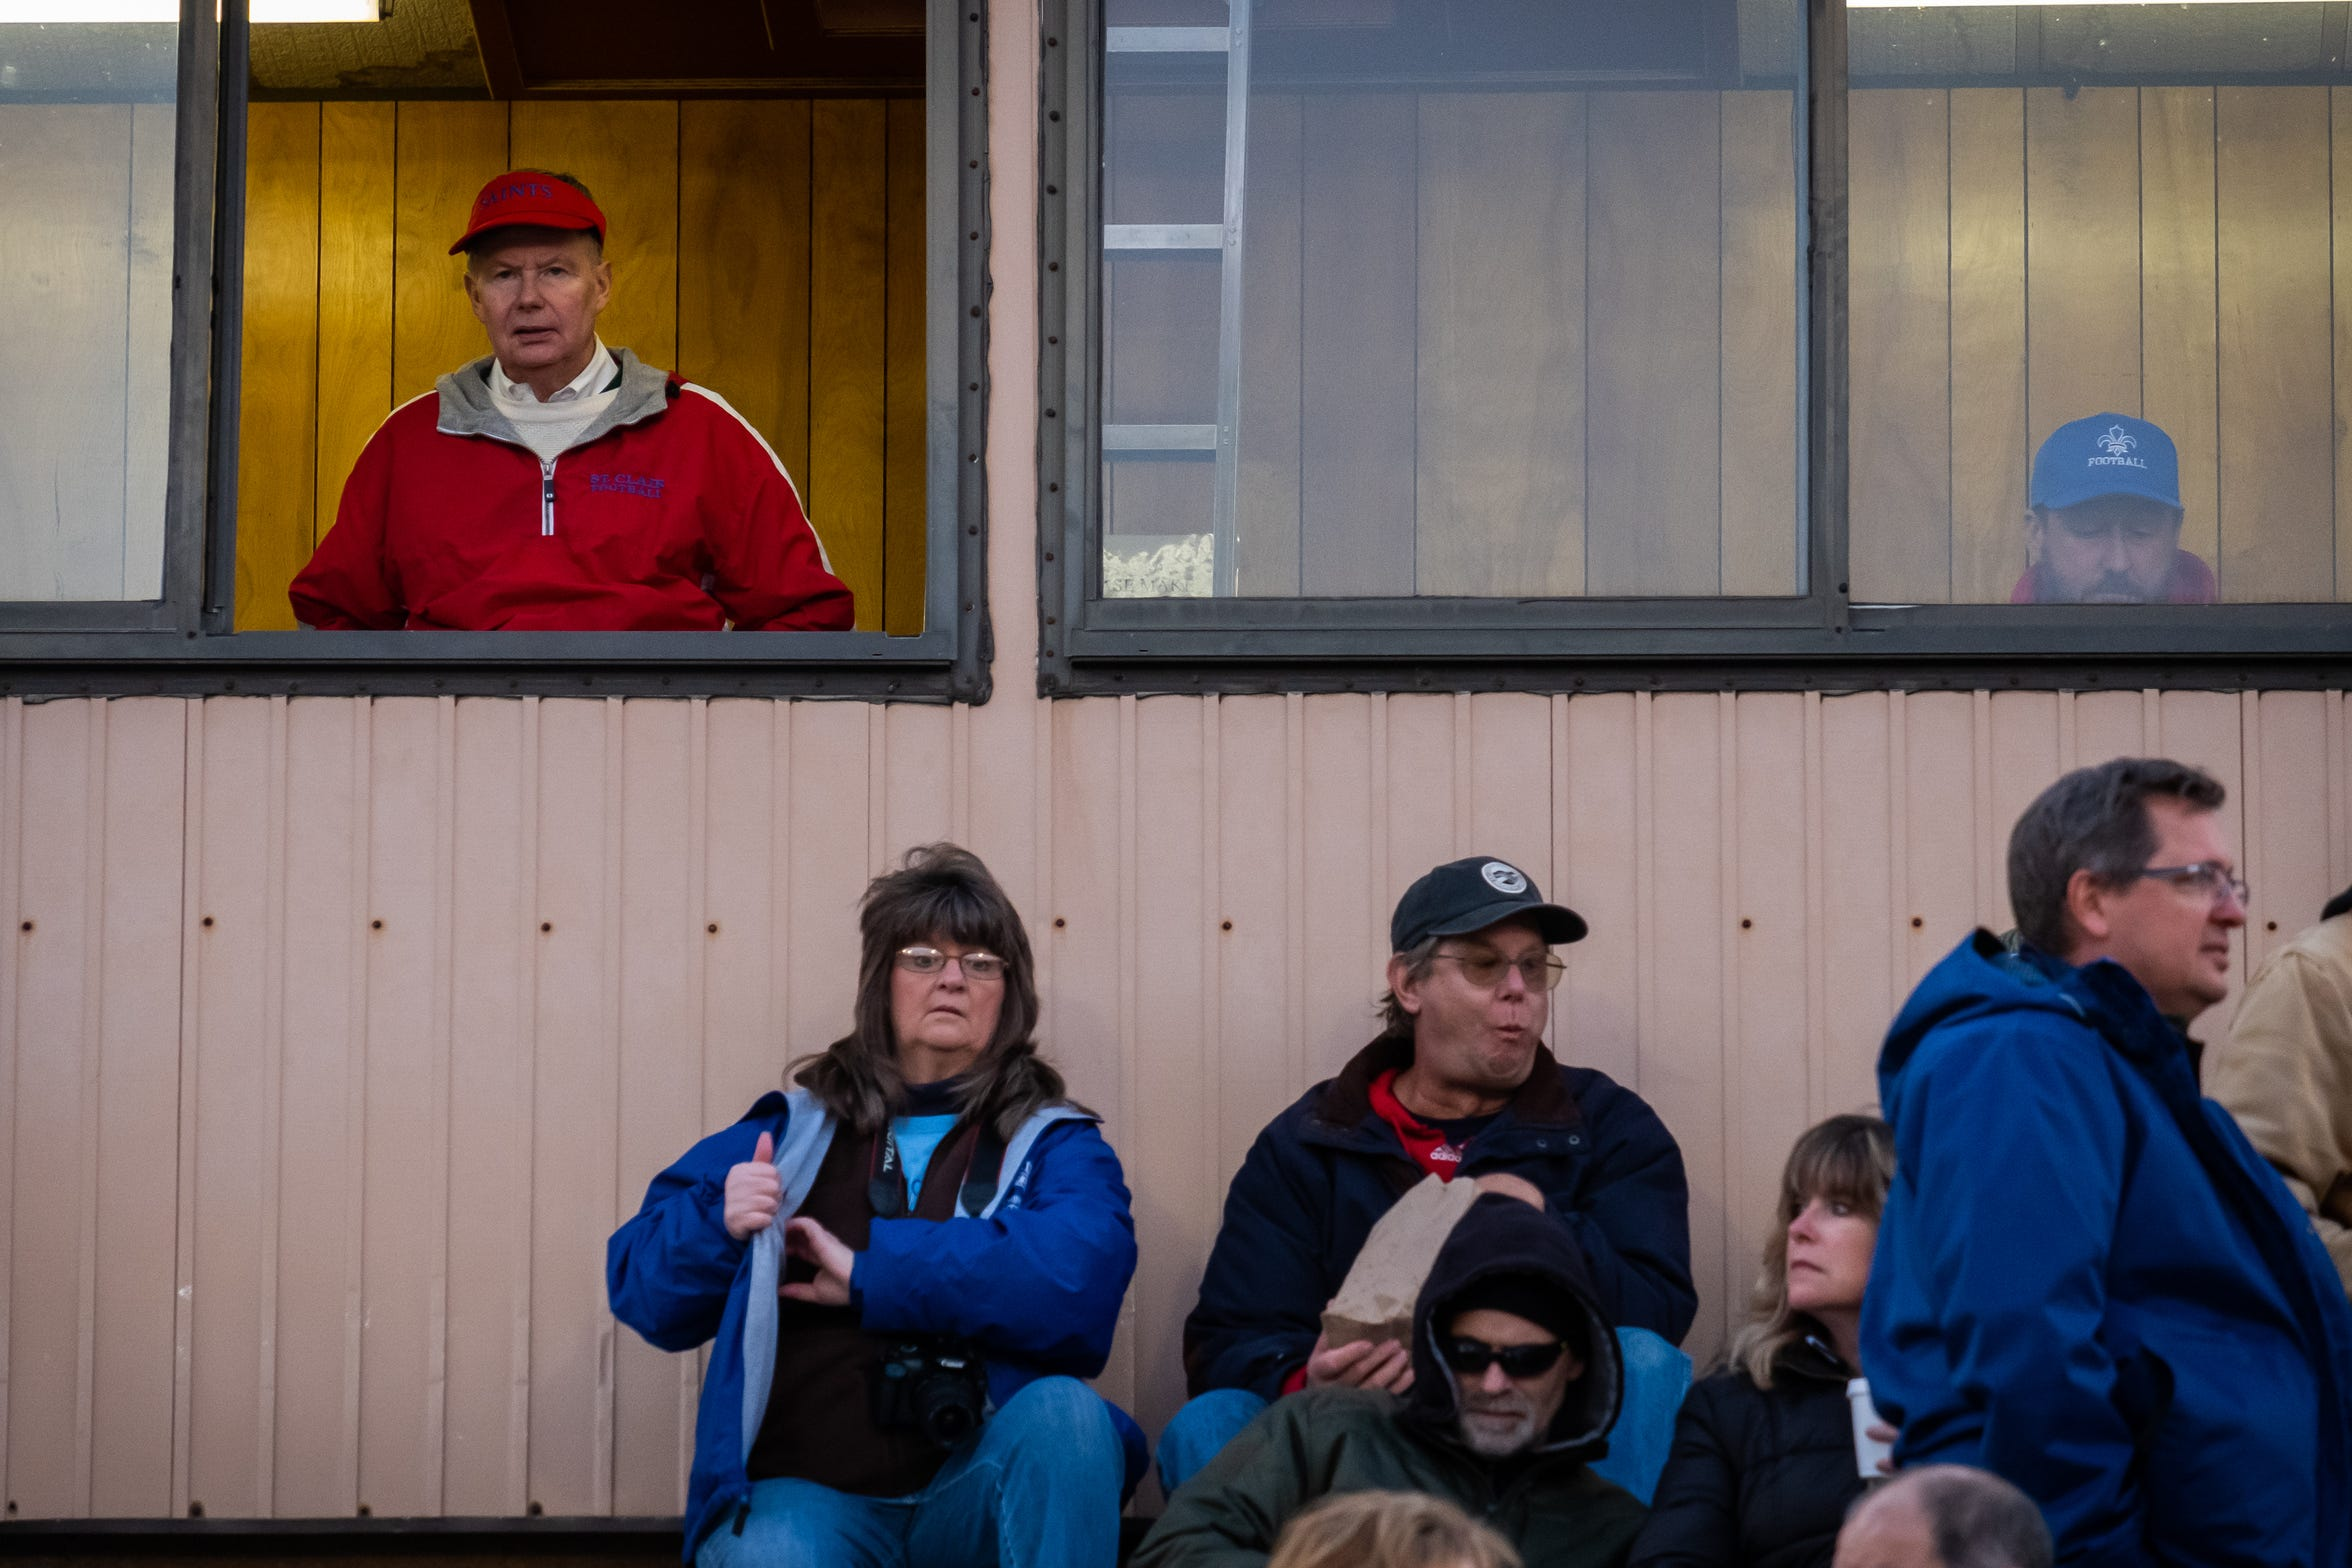 Bill Durow, 70, wears St. Clair High School attire as he watches the team warm up from the press box before taking on South Lake Friday, Oct. 18, 2019, at East China Stadium. Durow always wears the gear of whichever home team he's keeping time for.